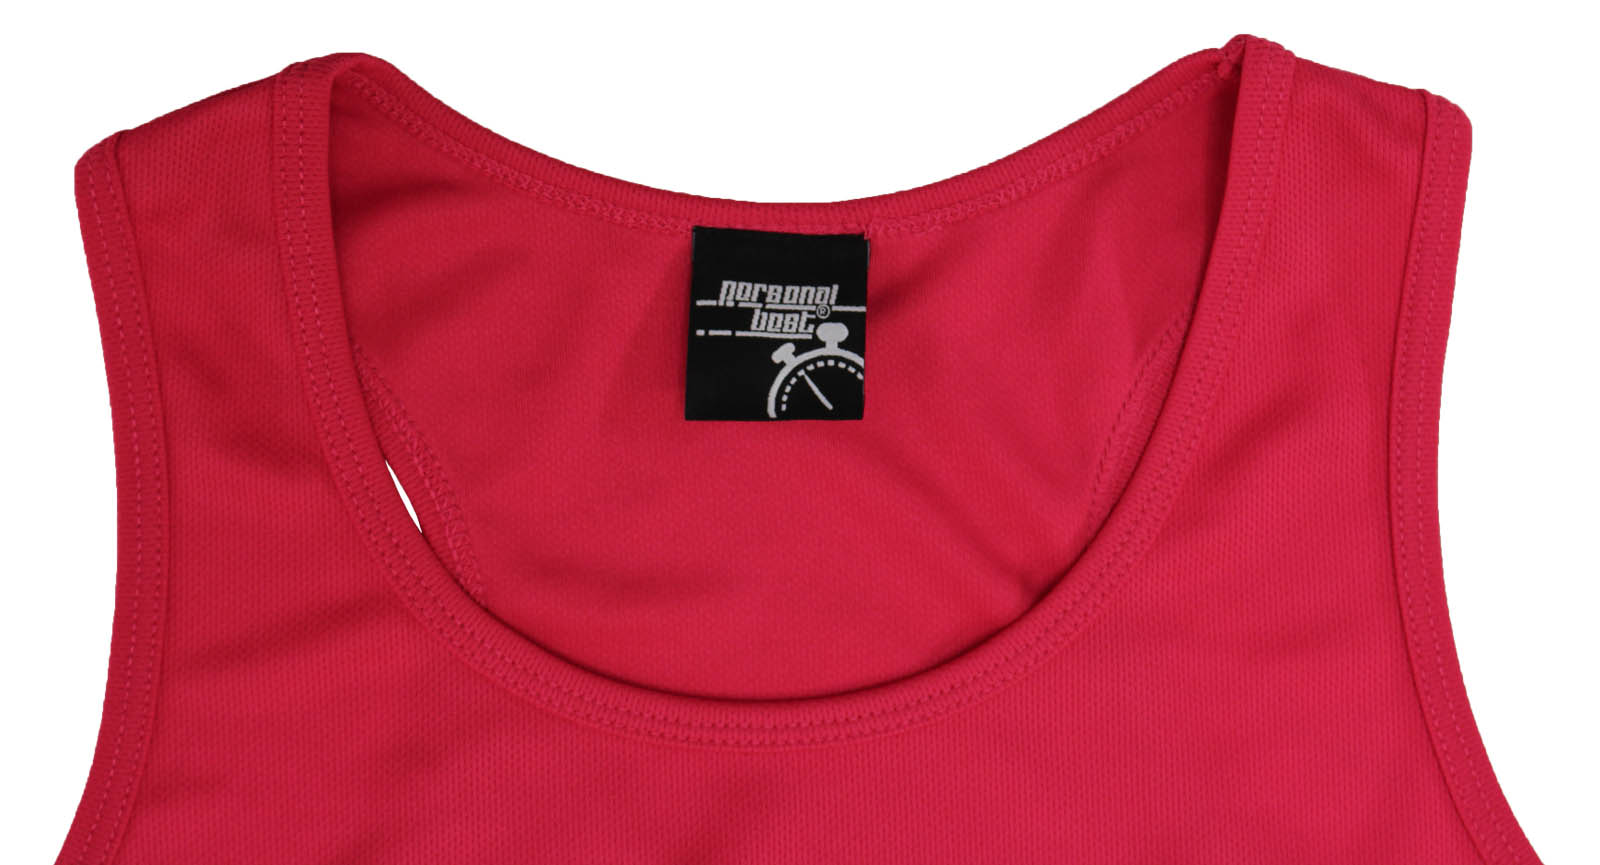 Routine WOMENS DRY FIT VEST birthday gift running runner Its Only Effort ..